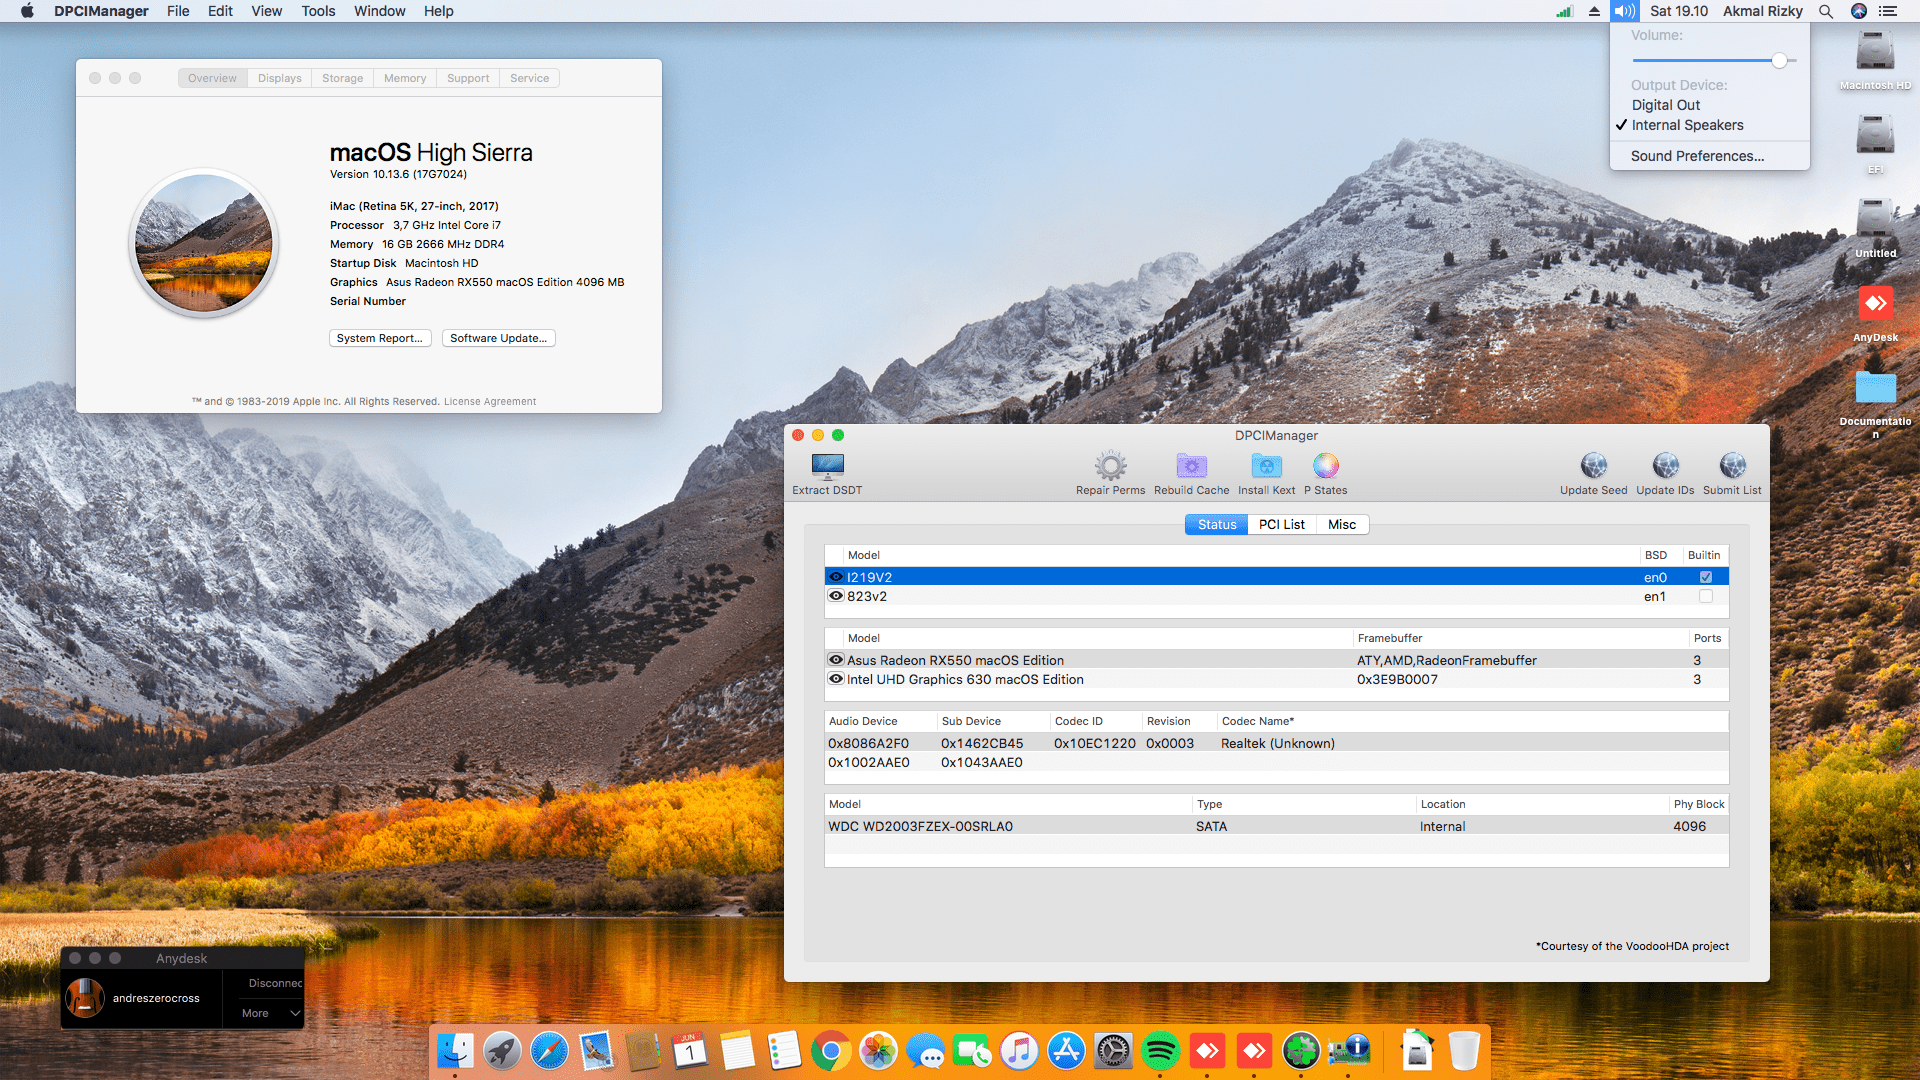 Success Hackintosh macOS High Sierra 10.13.6 Build 17G7024 at MSI Z370 Gaming Pro Carbon + Intel i7 8700K + Asus RX 550 4GB